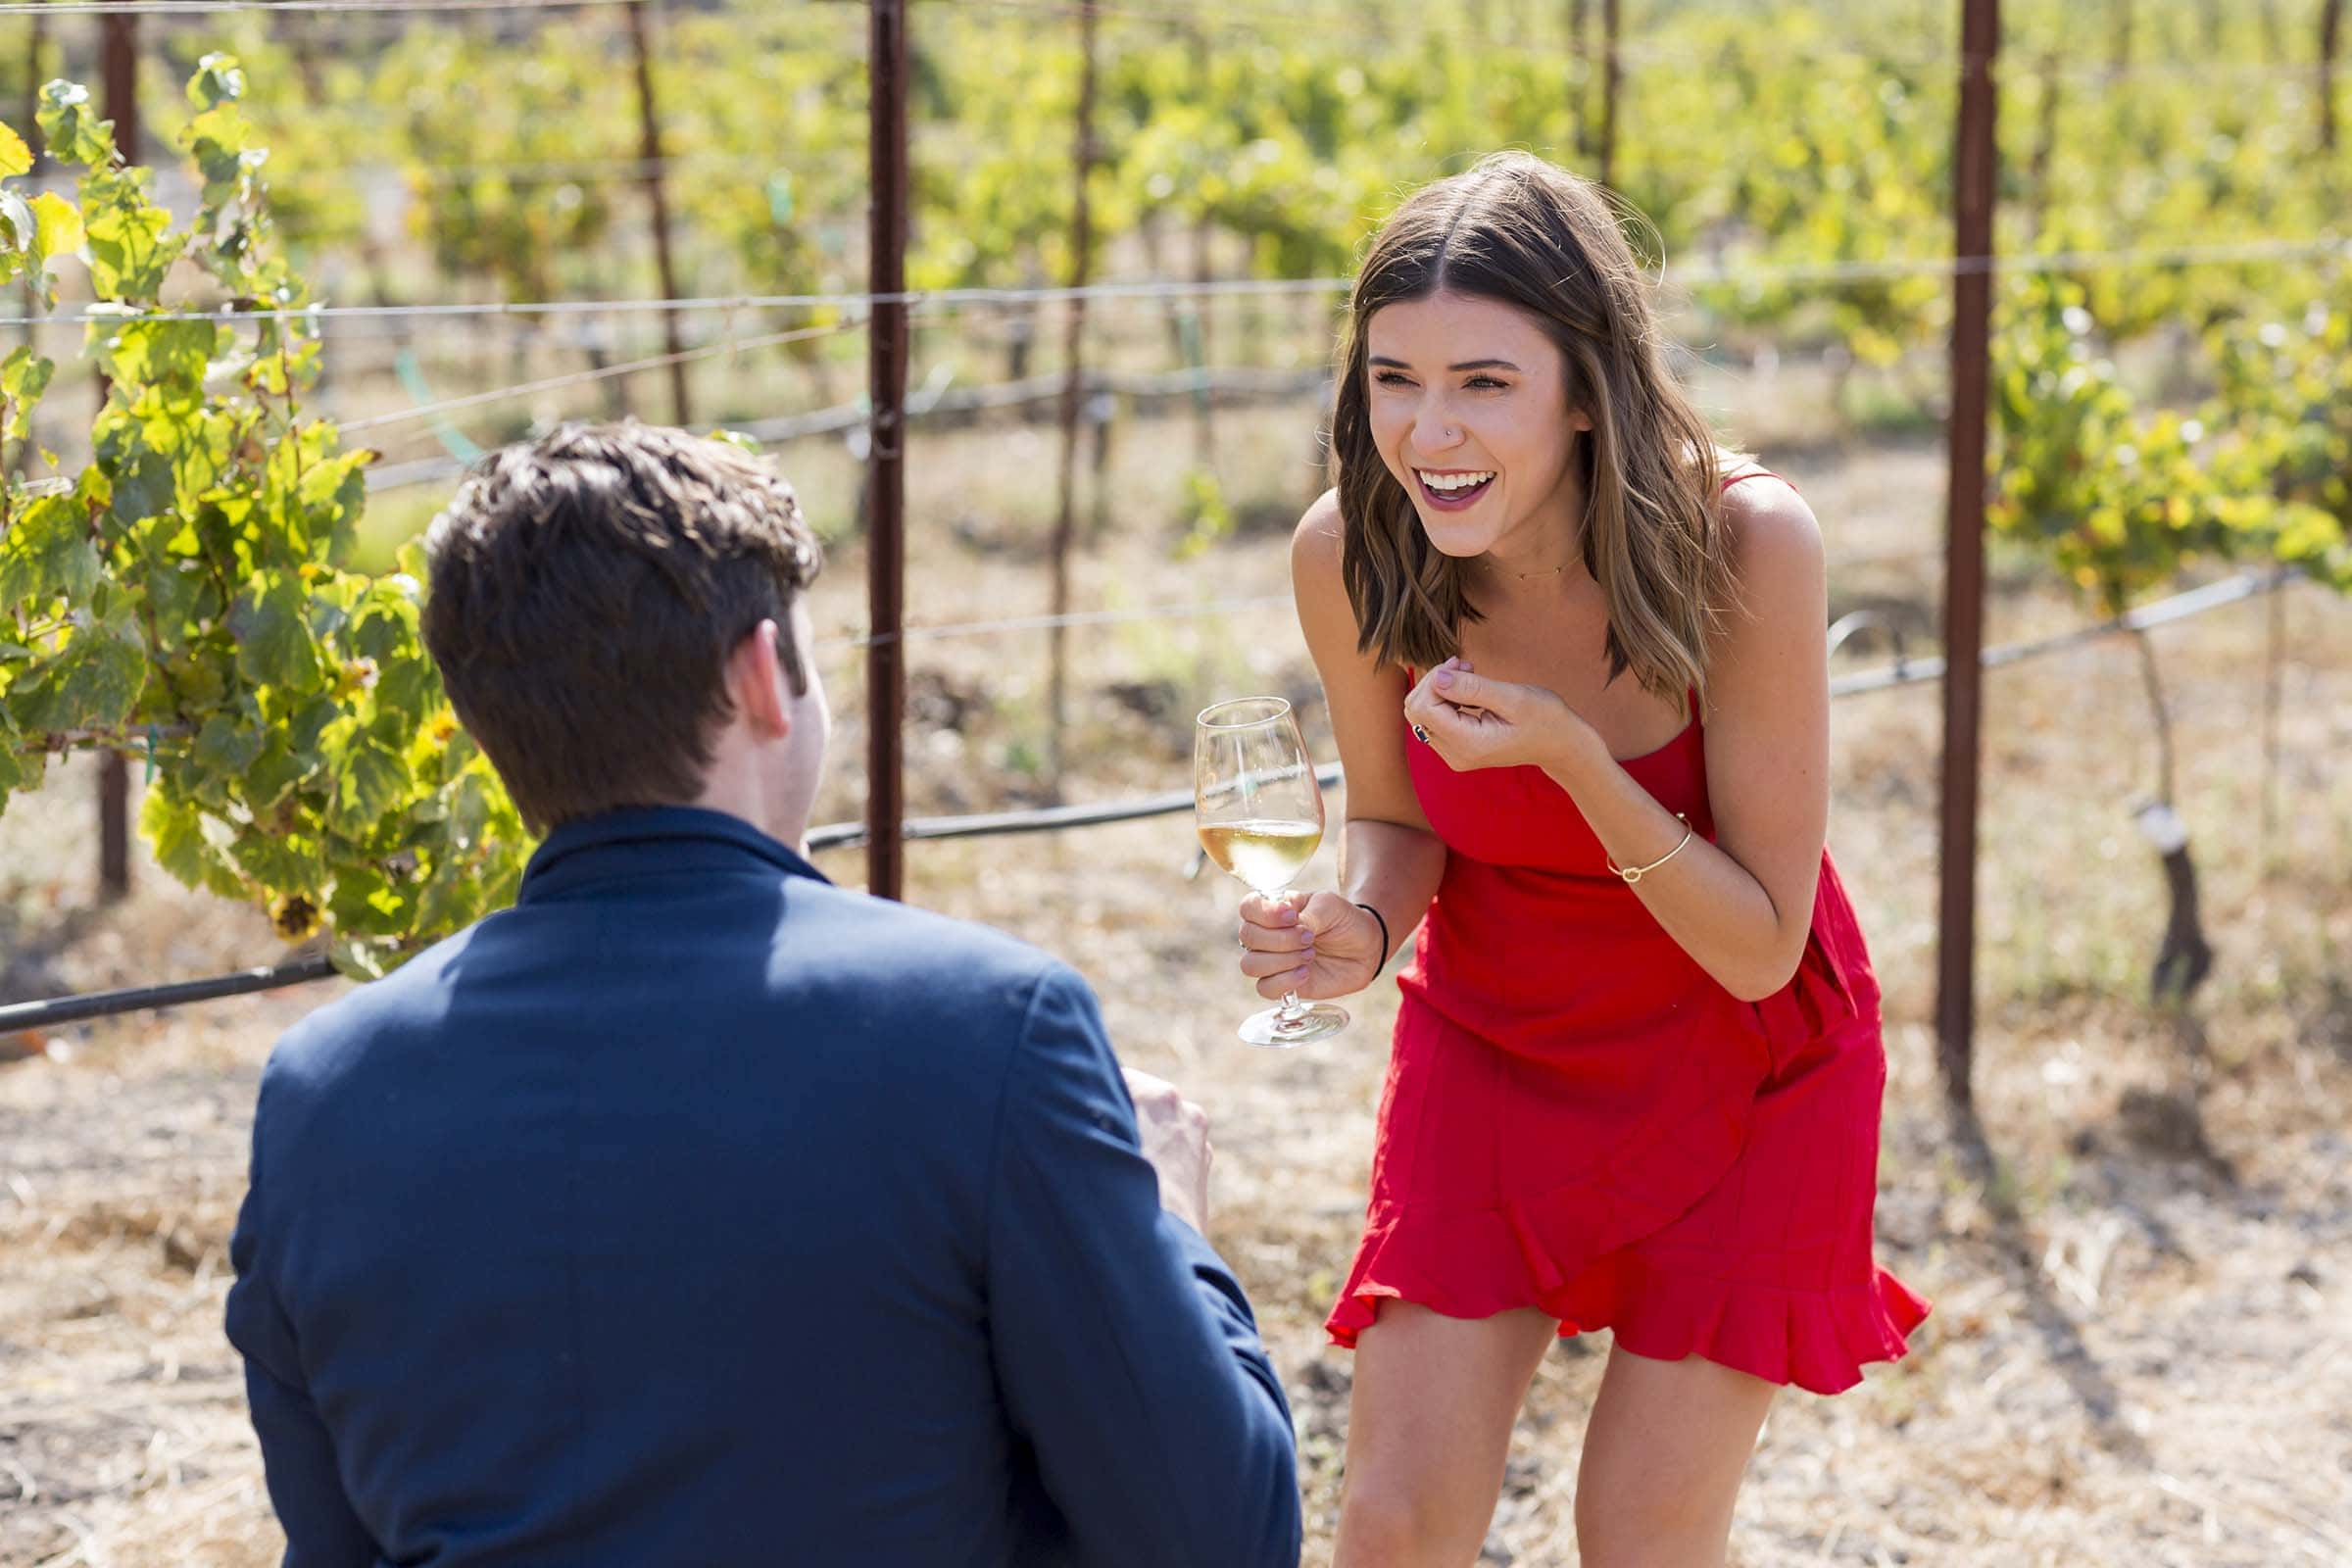 Cline Cellars marriage proposal in Napa girl in red dress smiling as guy in blue jacket is on his knee proposing